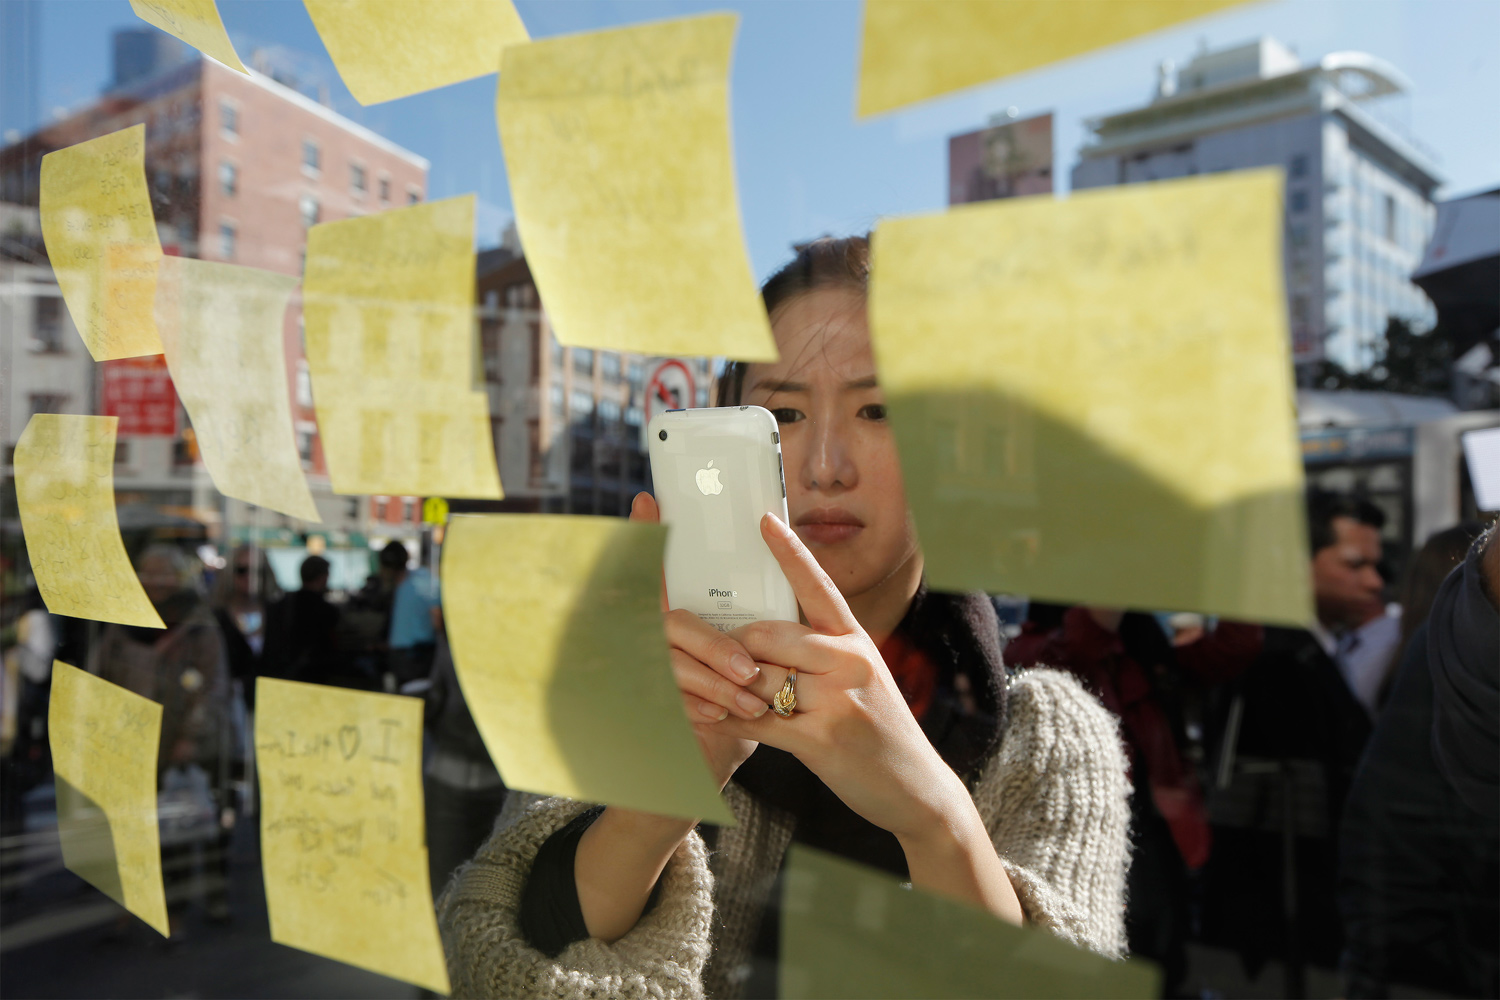 October 6, 2011. A woman uses her iPhone to photograph notes left memorializing Steve Jobs on the exterior of Apple's 14th Street store in New York. Apple Inc co-founder and former CEO Steve Jobs died on at the age of 56 after a years-long and highly public battle with cancer and other health issues.